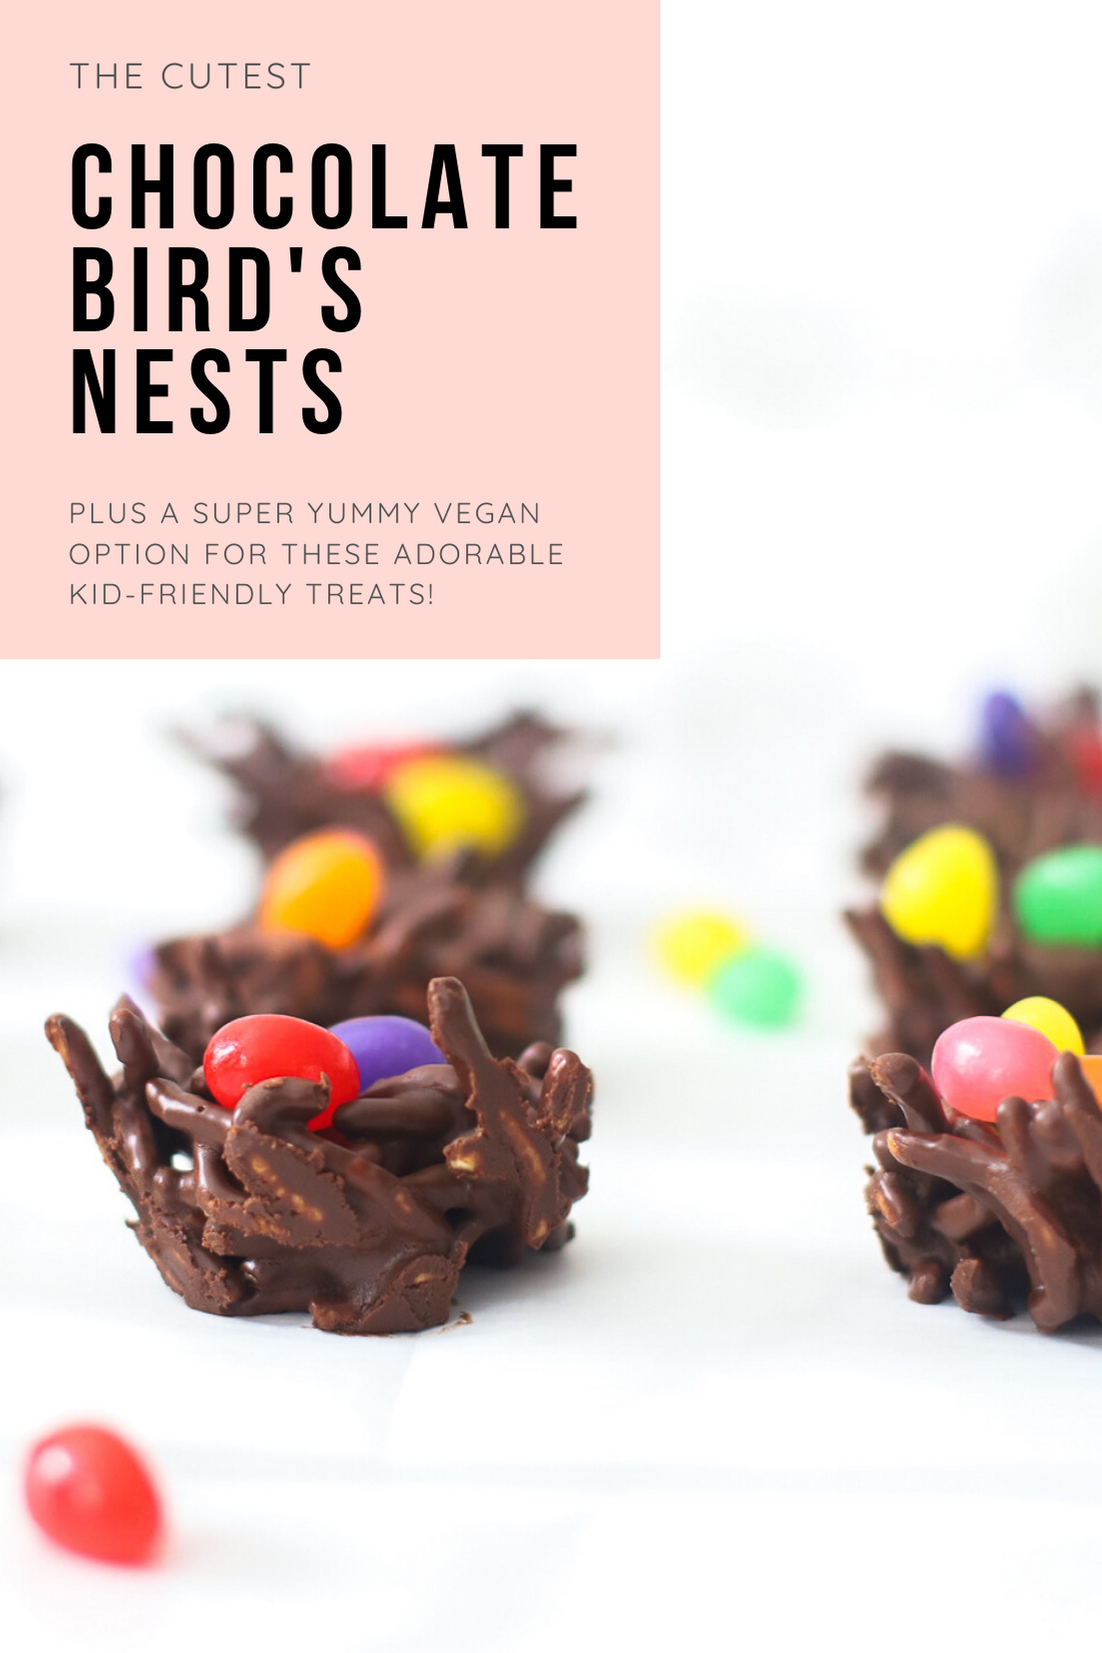 Celebrate Easter and the spring season with these adorable no-bake chocolate birds nests. The recipe is super simple to make, totally kid-friendly, and with a few easy tweaks, your chocolate bird's nest can be made totally vegan! | glitterinc.com | @glitterinc